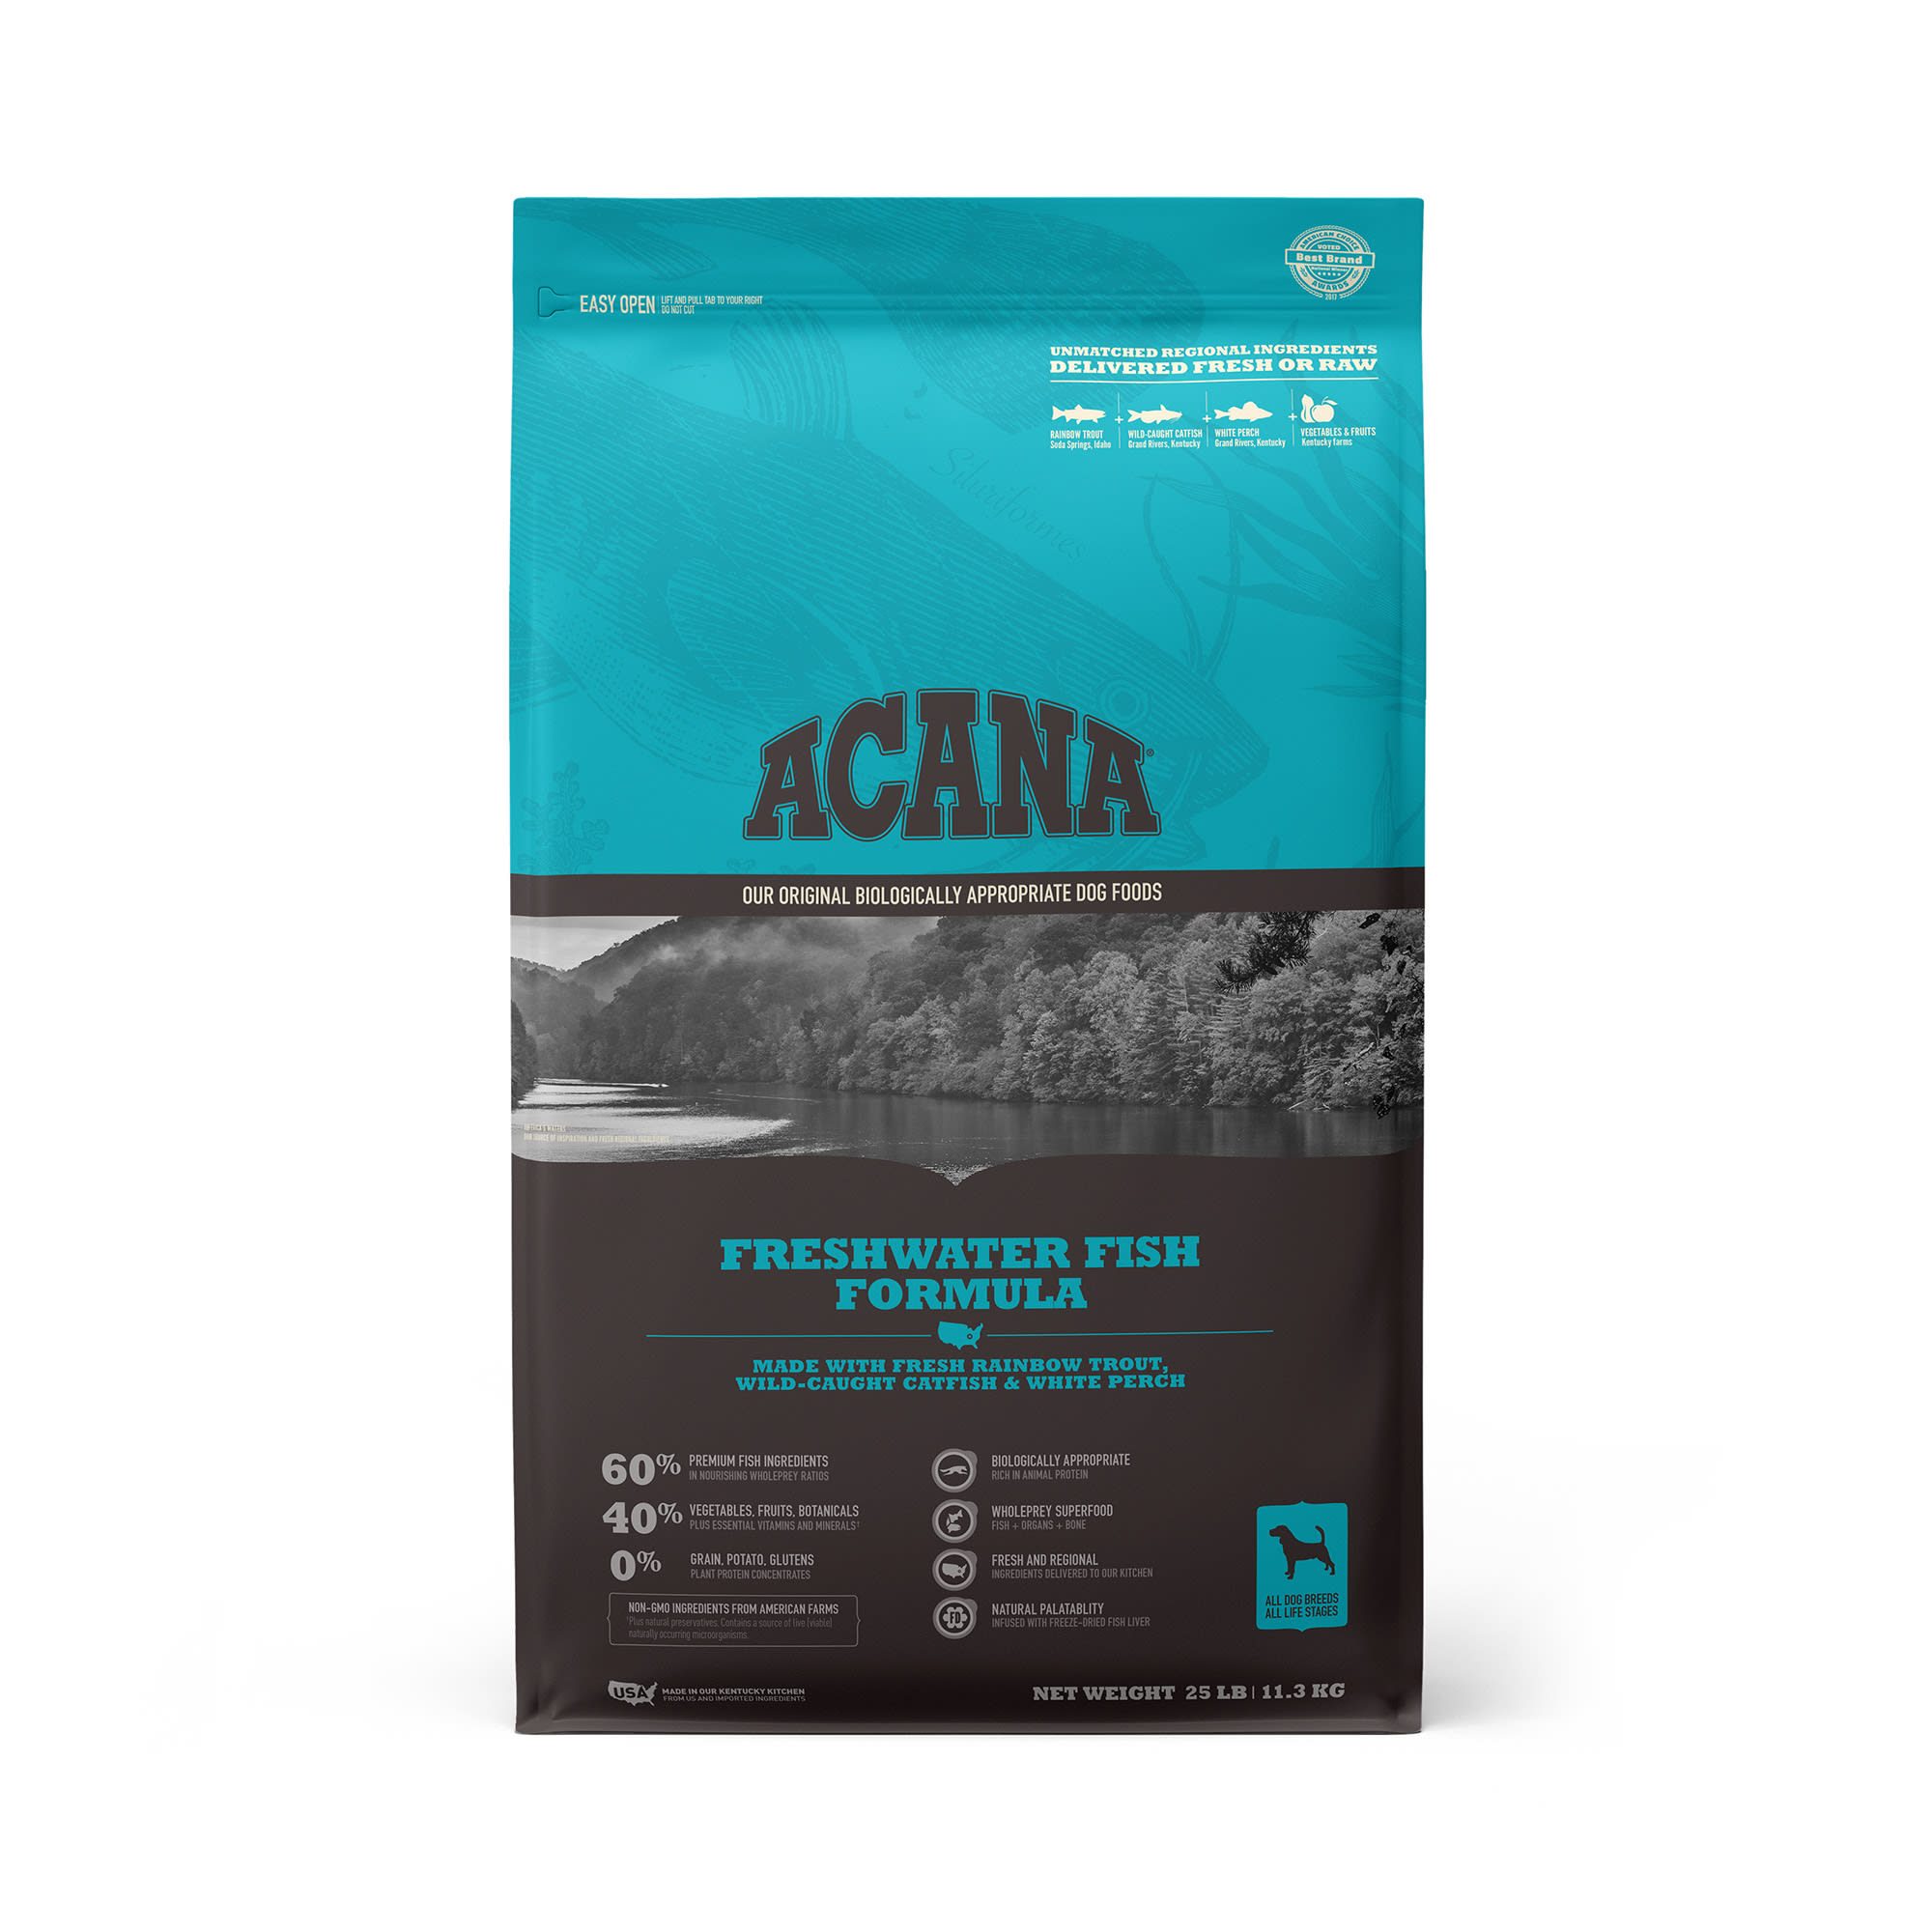 ACANA Grain-Free Freshwater Fish Whole Trout Catfish and Perch Dry Dog Food, 25 lbs.